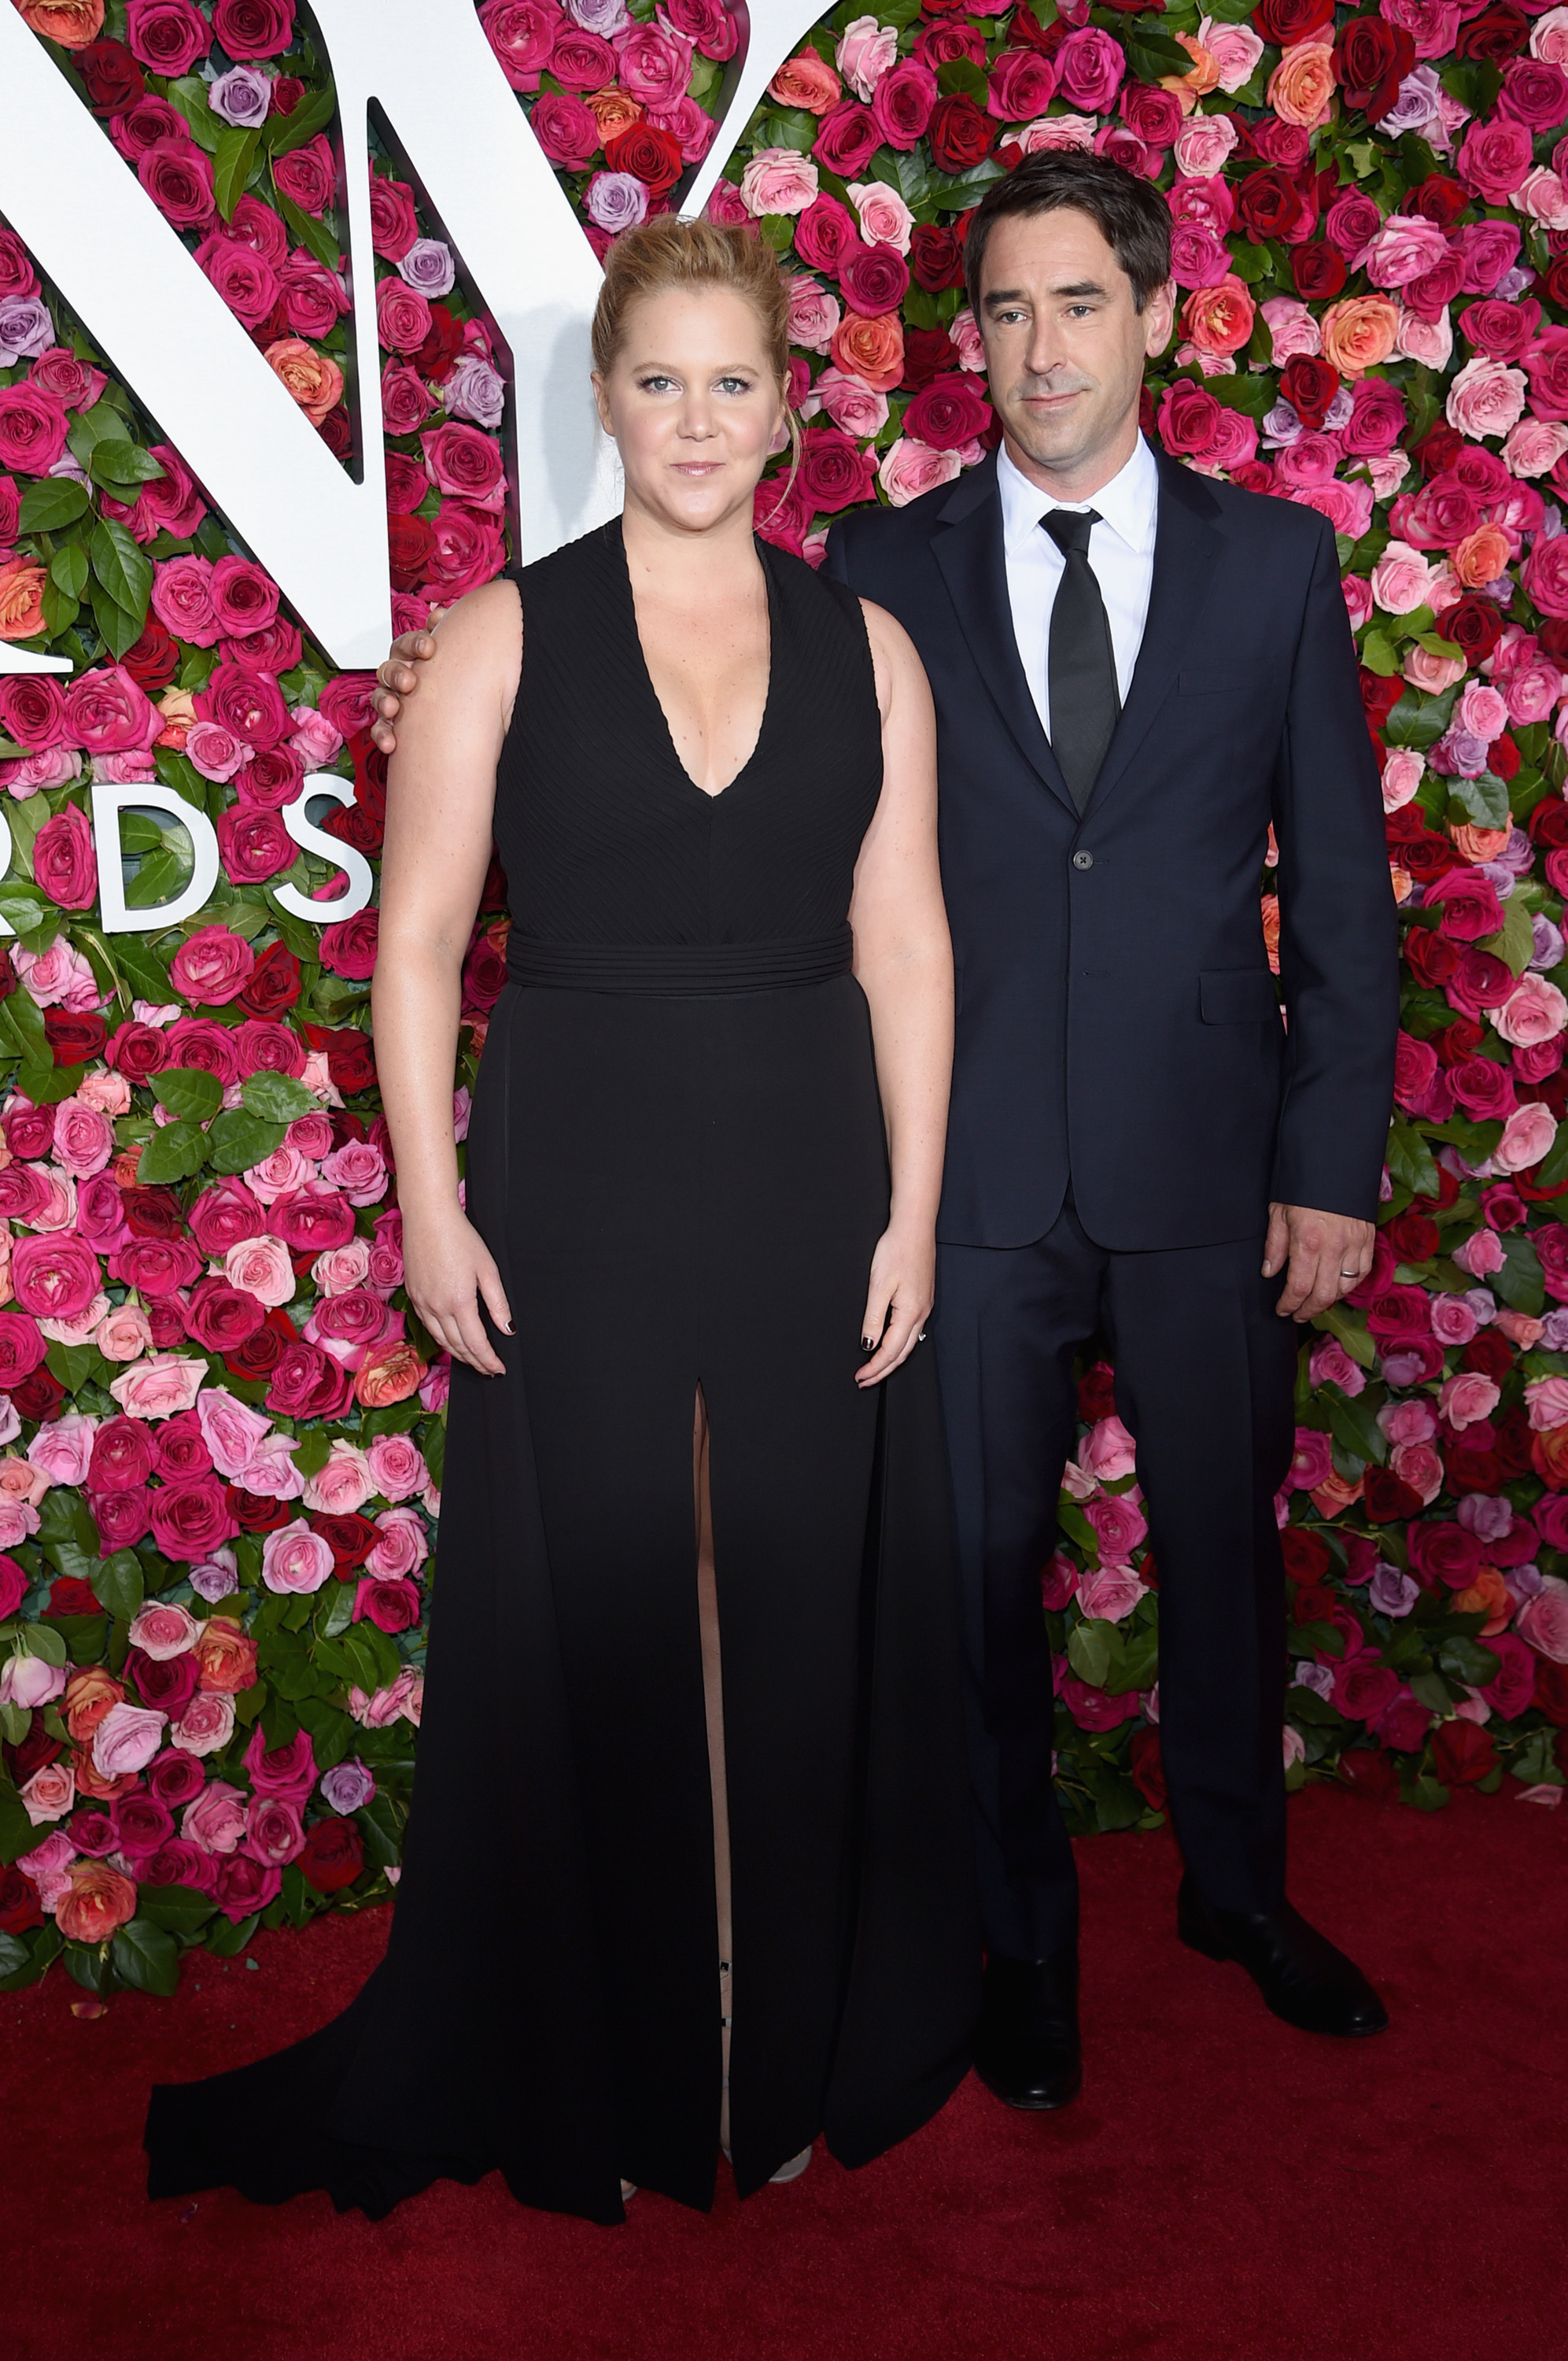 Amy Schumer (L) and Chris Fischer attend the 72nd Annual Tony Awards at Radio City Music Hall on June 10, 2018 in New York City. (Photo by Dimitrios Kambouris/Getty Images for Tony Awards Productions)